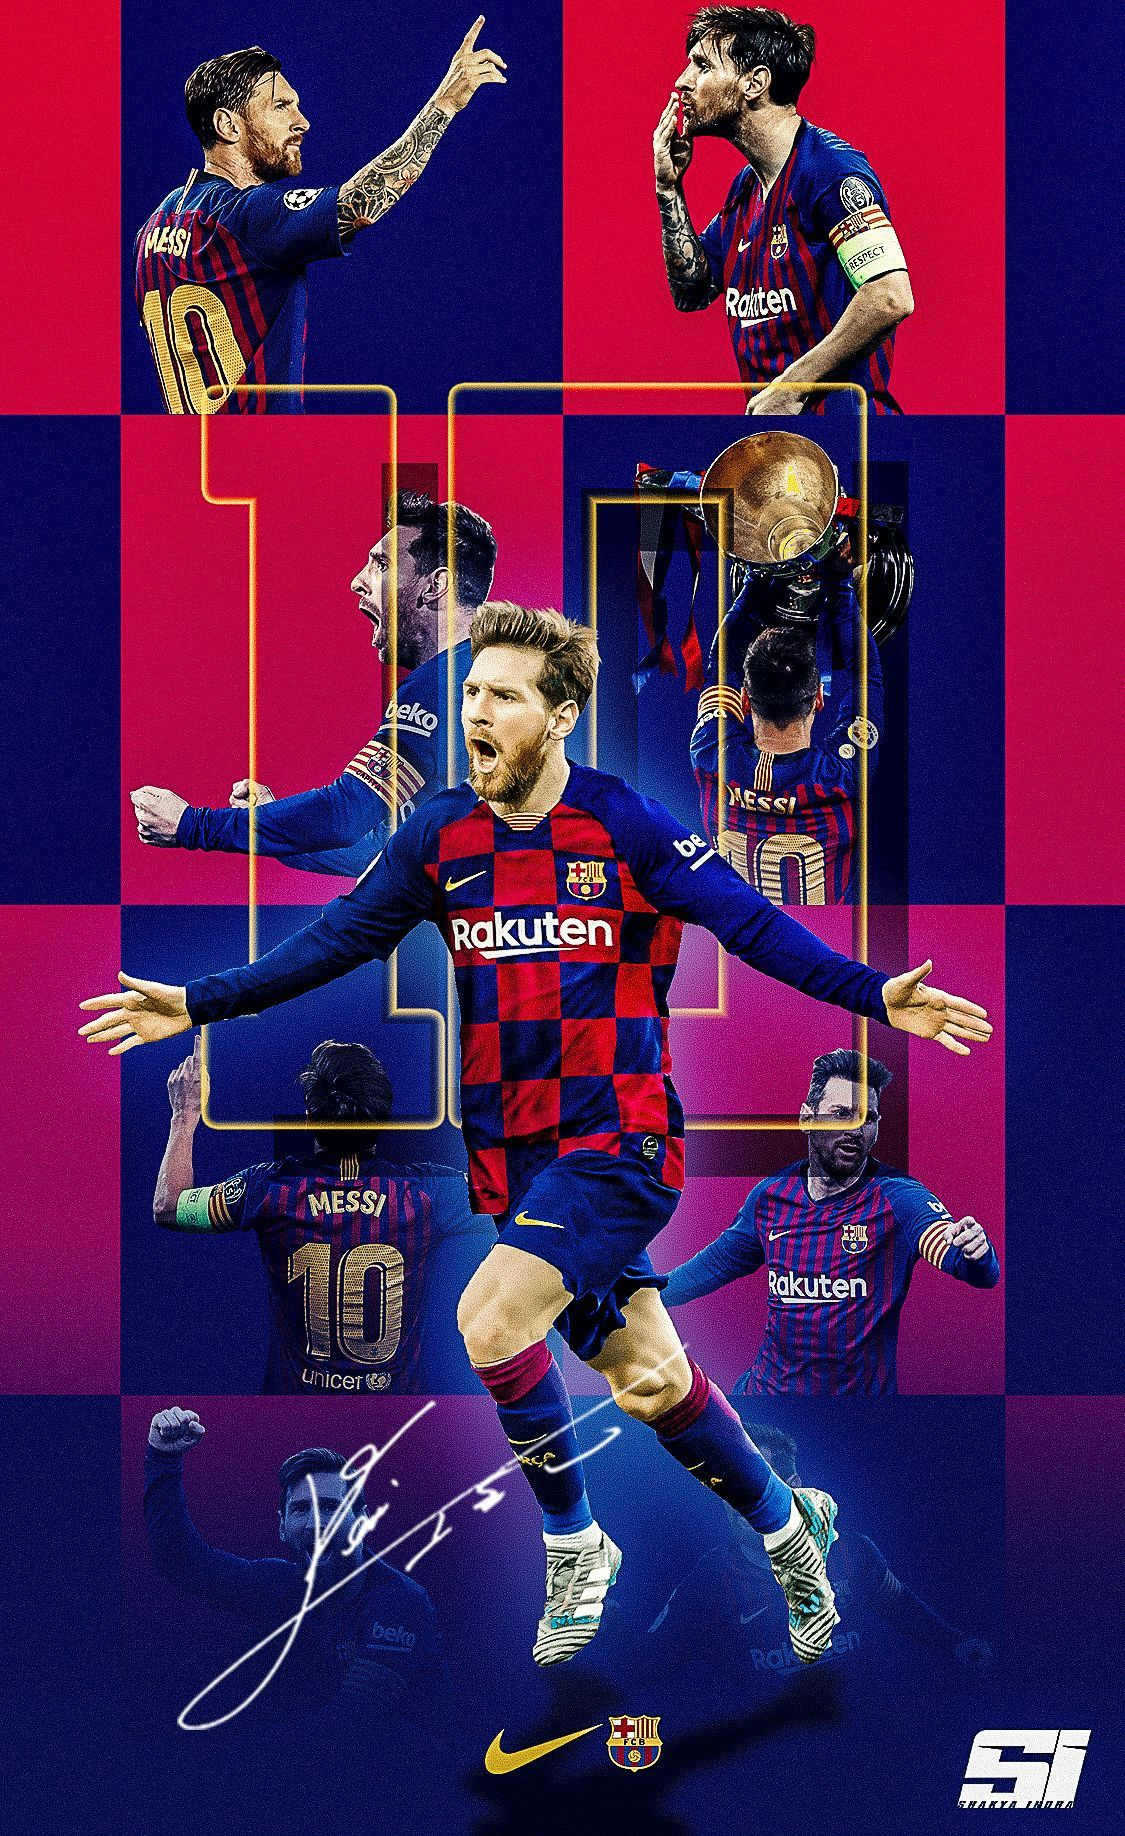 The Best 60 Lionel Messi Wallpaper Photos Hd 2020 Edigital